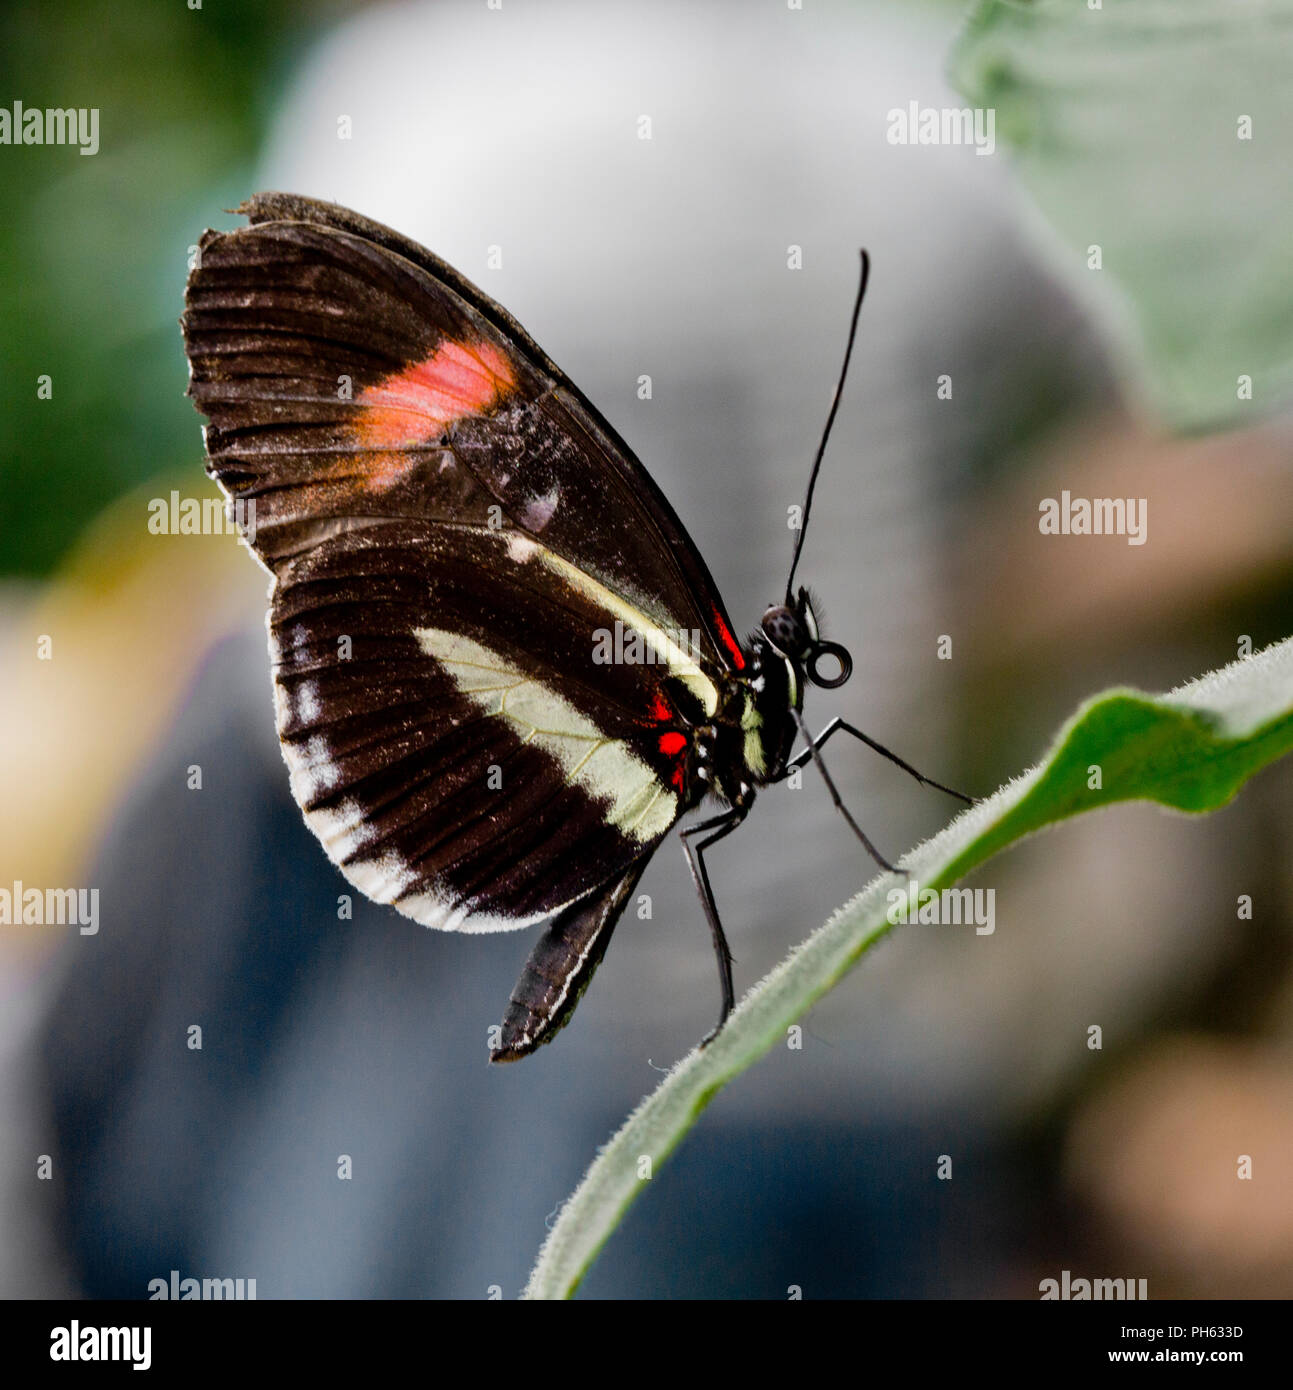 Small Postman butterfly, Heliconius erato from Central America and tropical South America - Stock Image